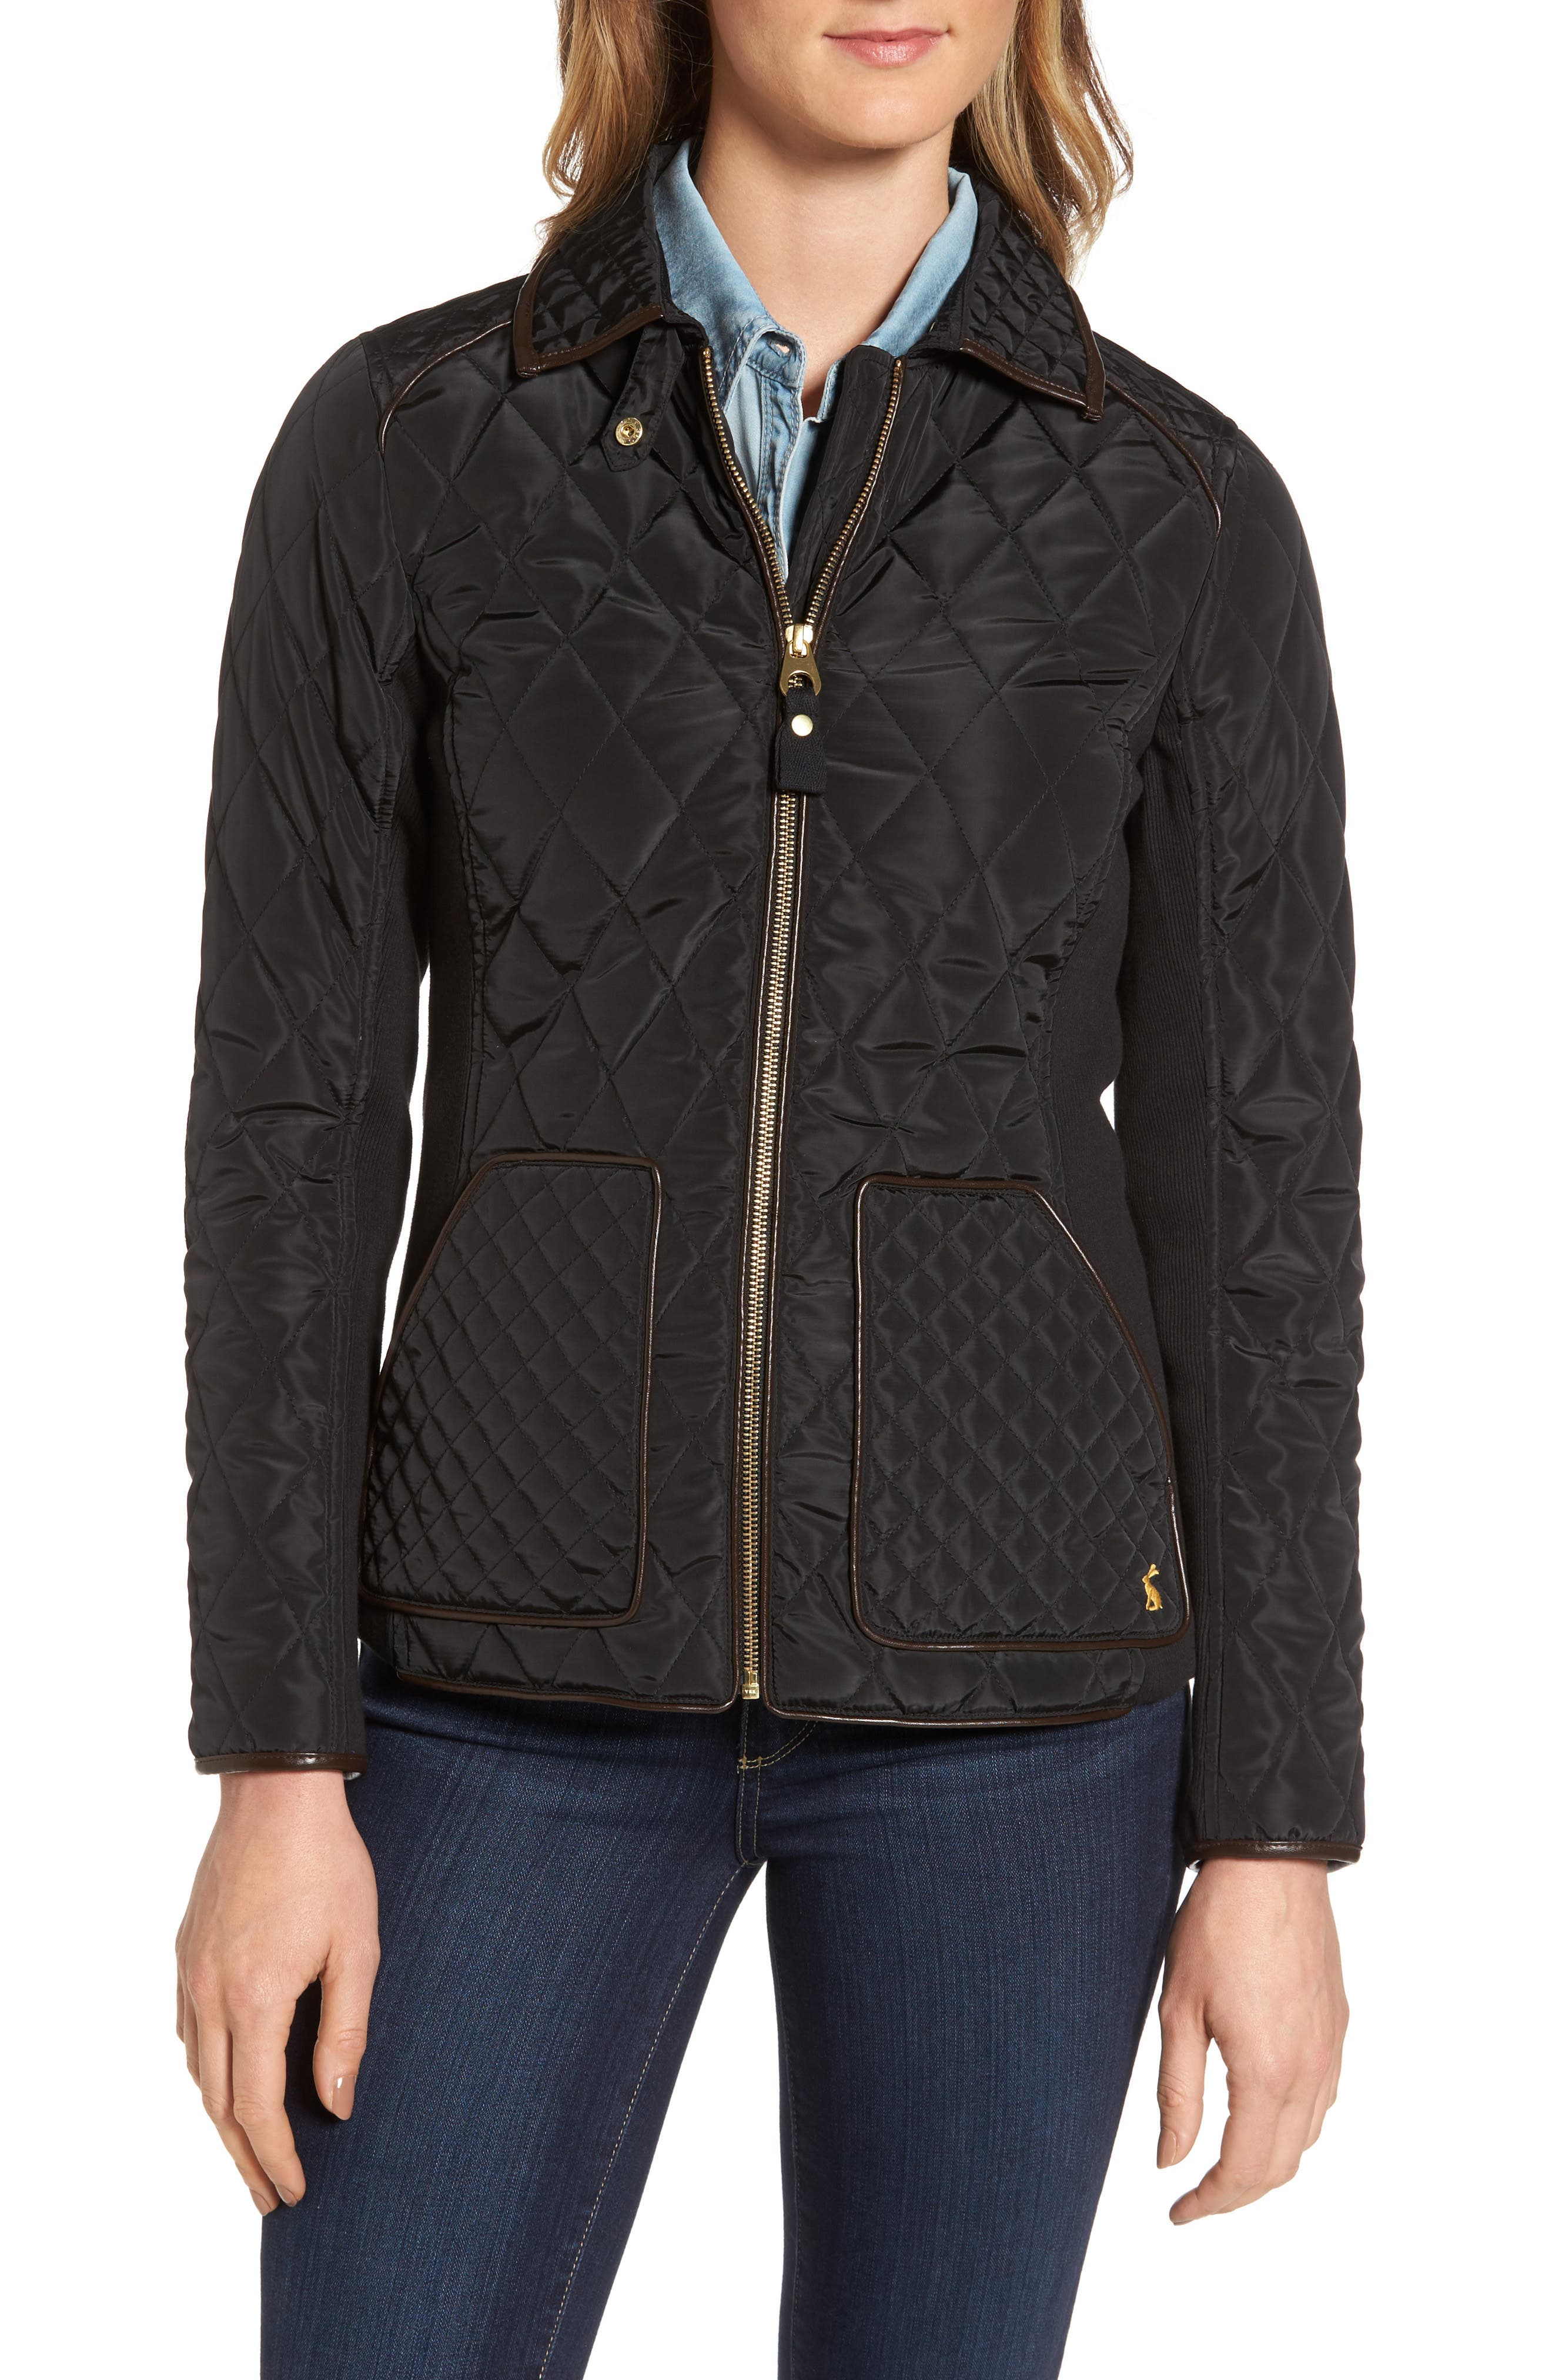 Warm Welcome Quilted Jacket,                             Alternate thumbnail 4, color,                             001